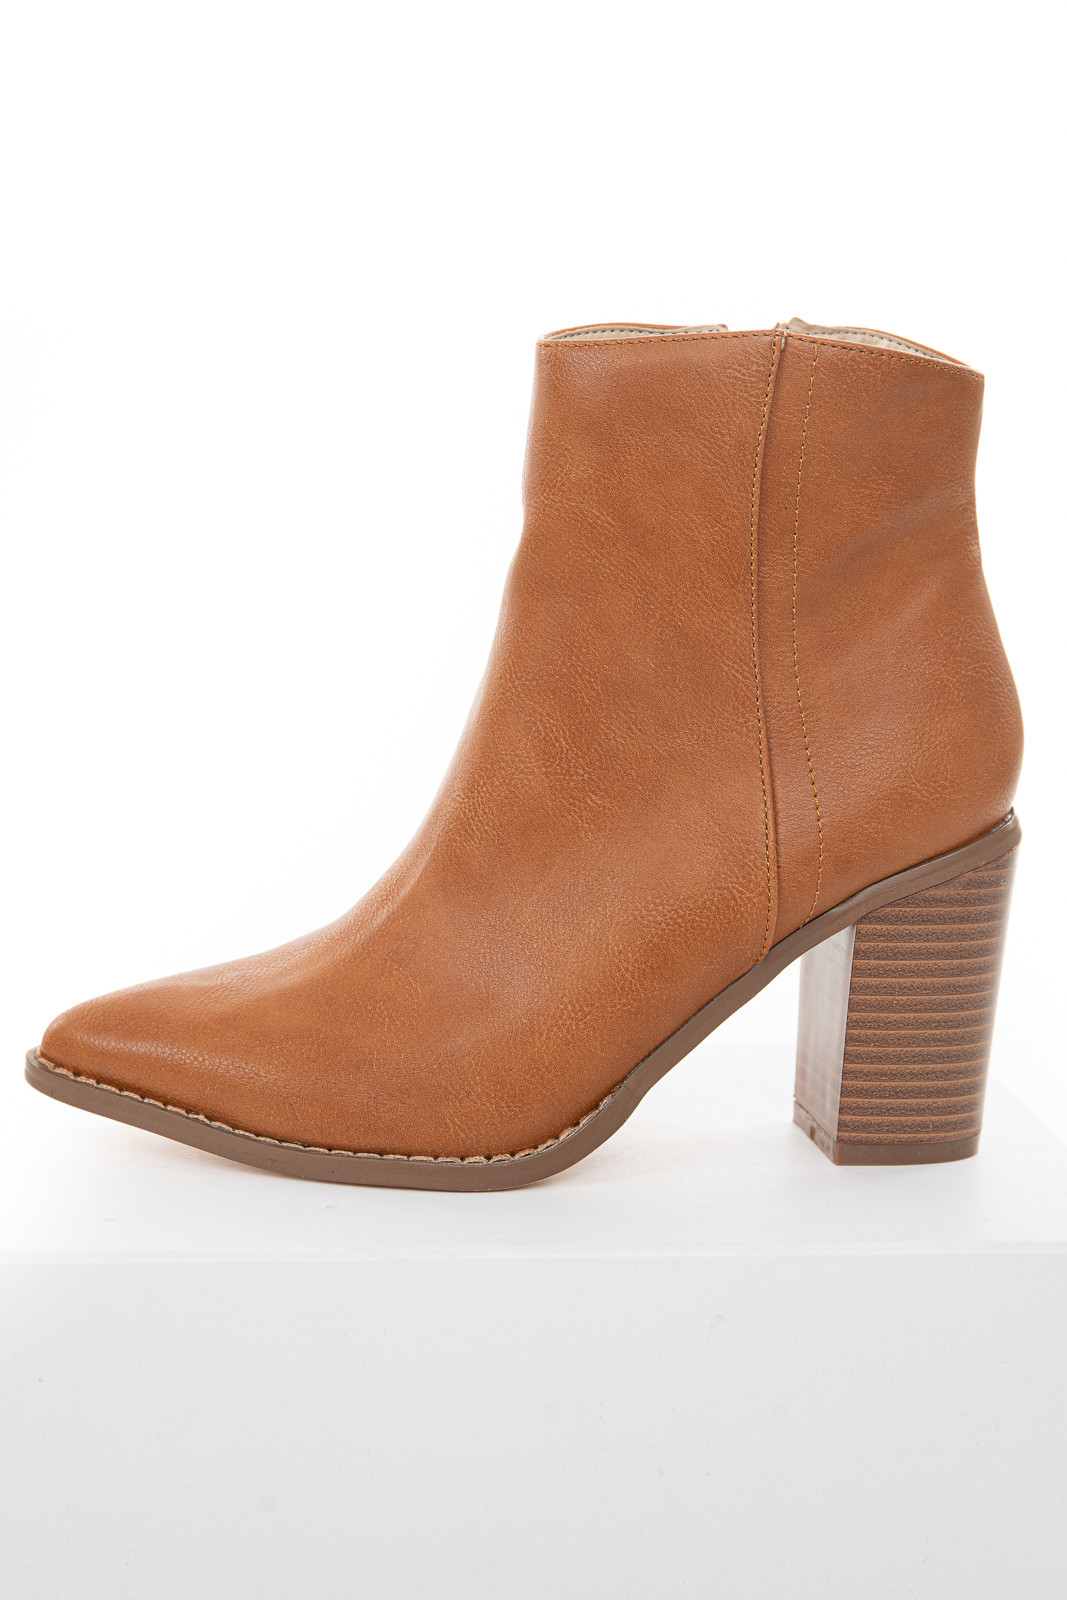 Camel Faux Leather High Heel Booties with Pointed Toe